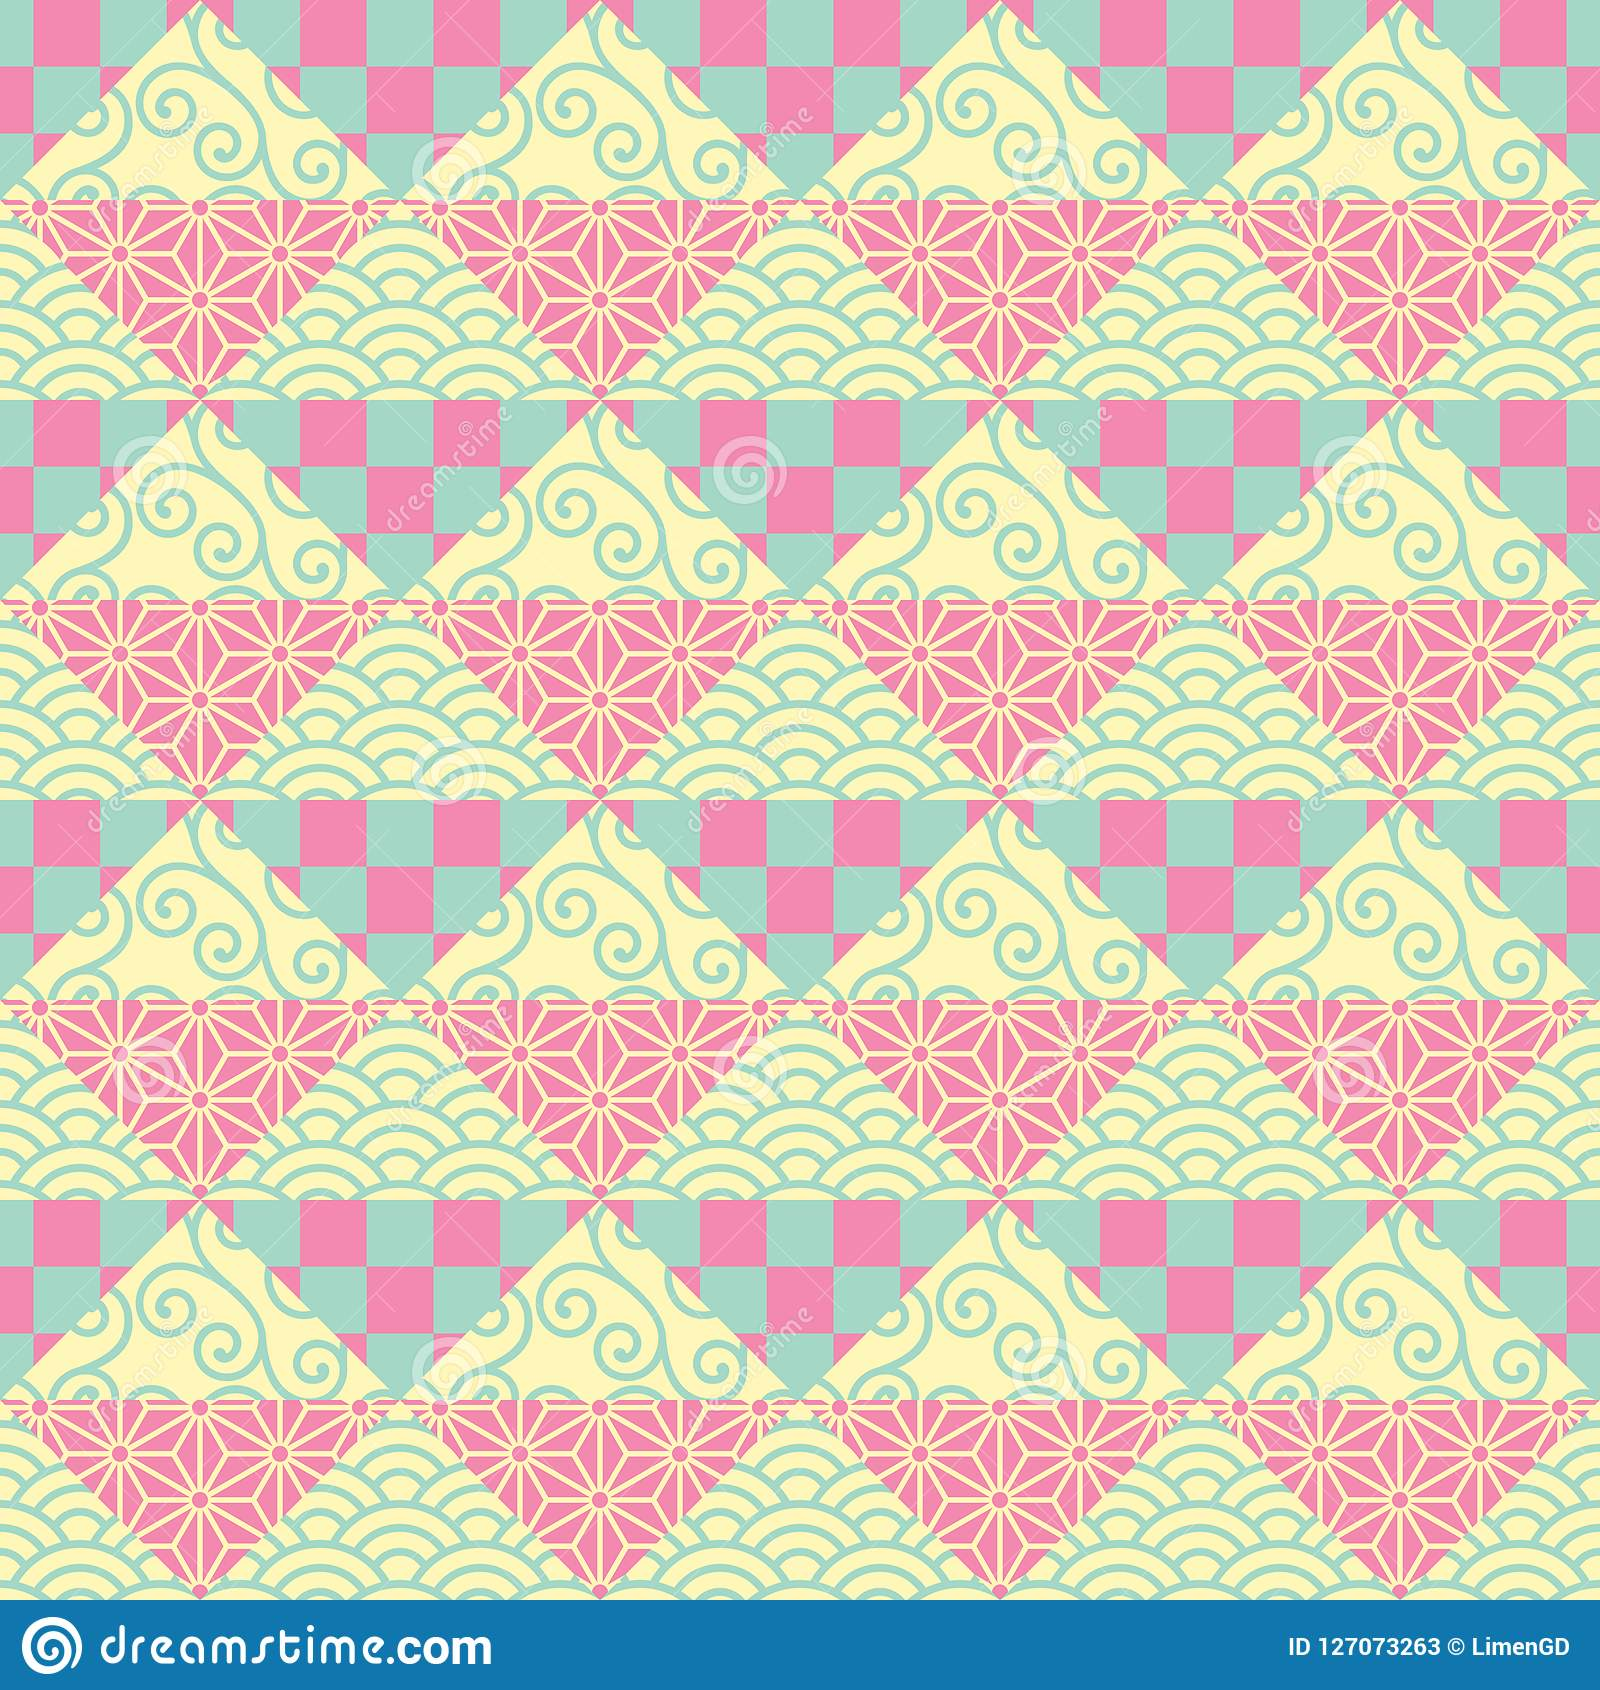 Japanese Patchwork Seamless Vector Pattern In Pink Yellow And Green